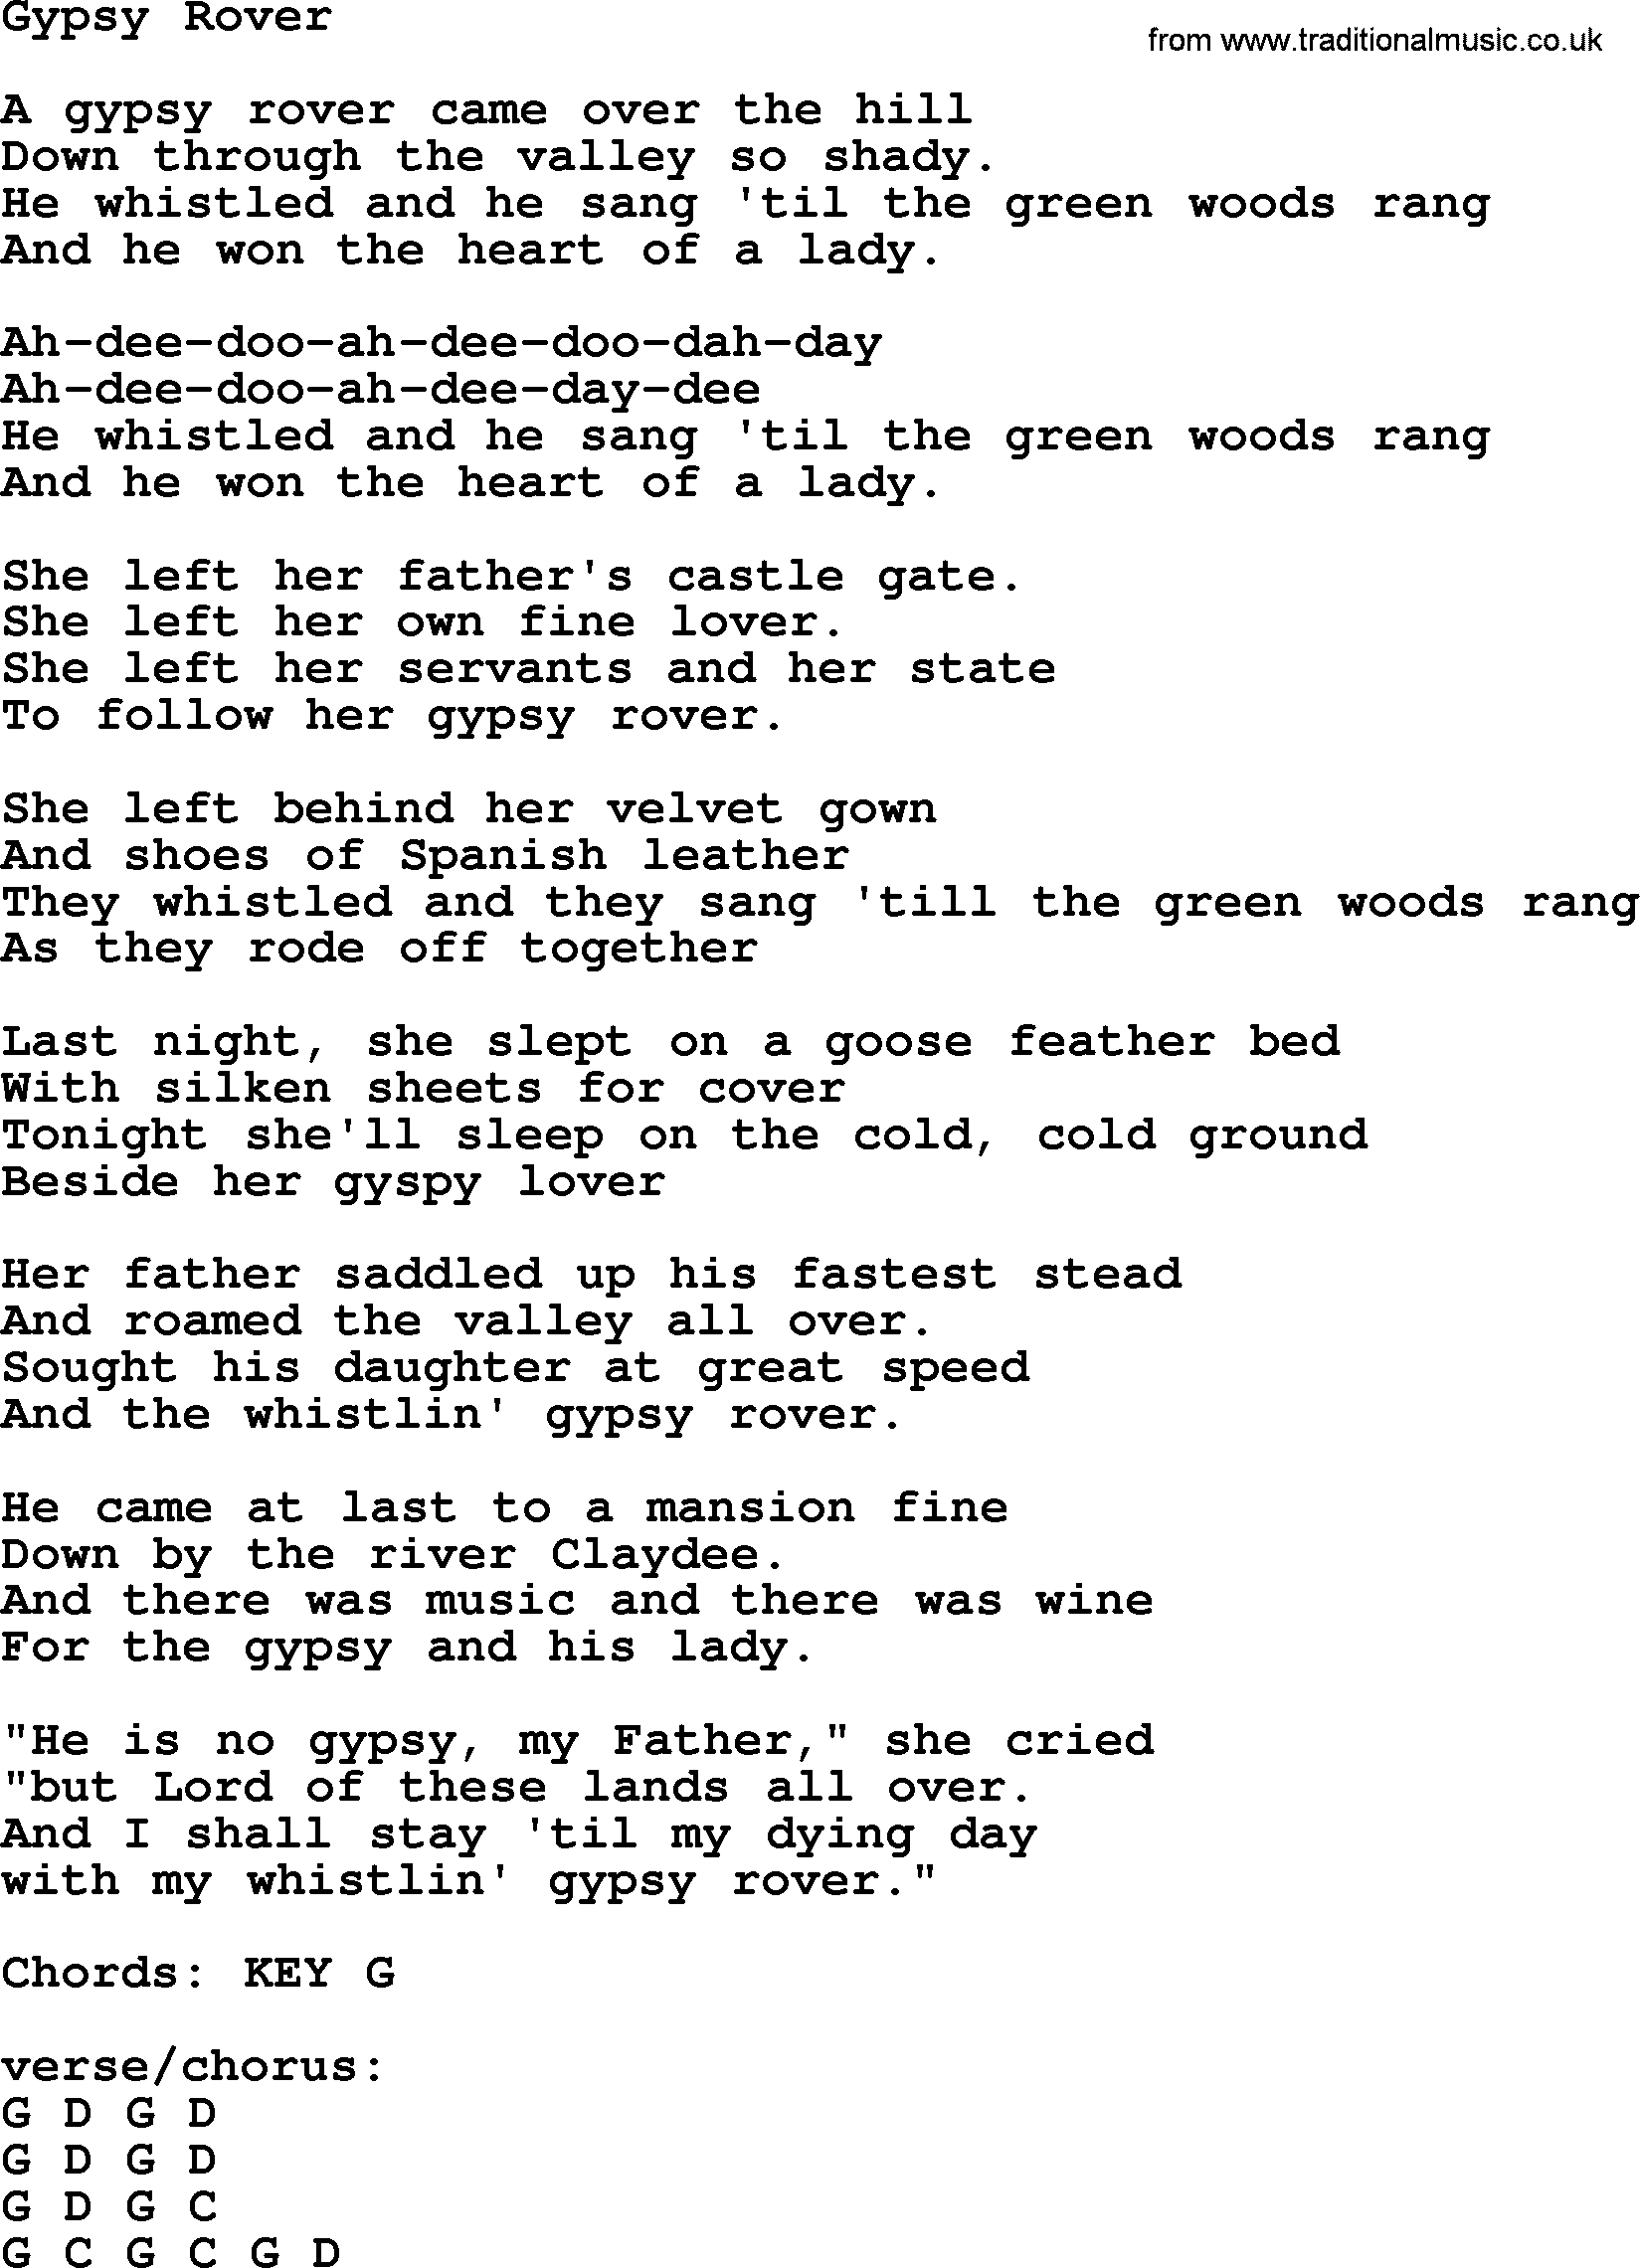 Gypsy Rover by The Dubliners - song lyrics and chords